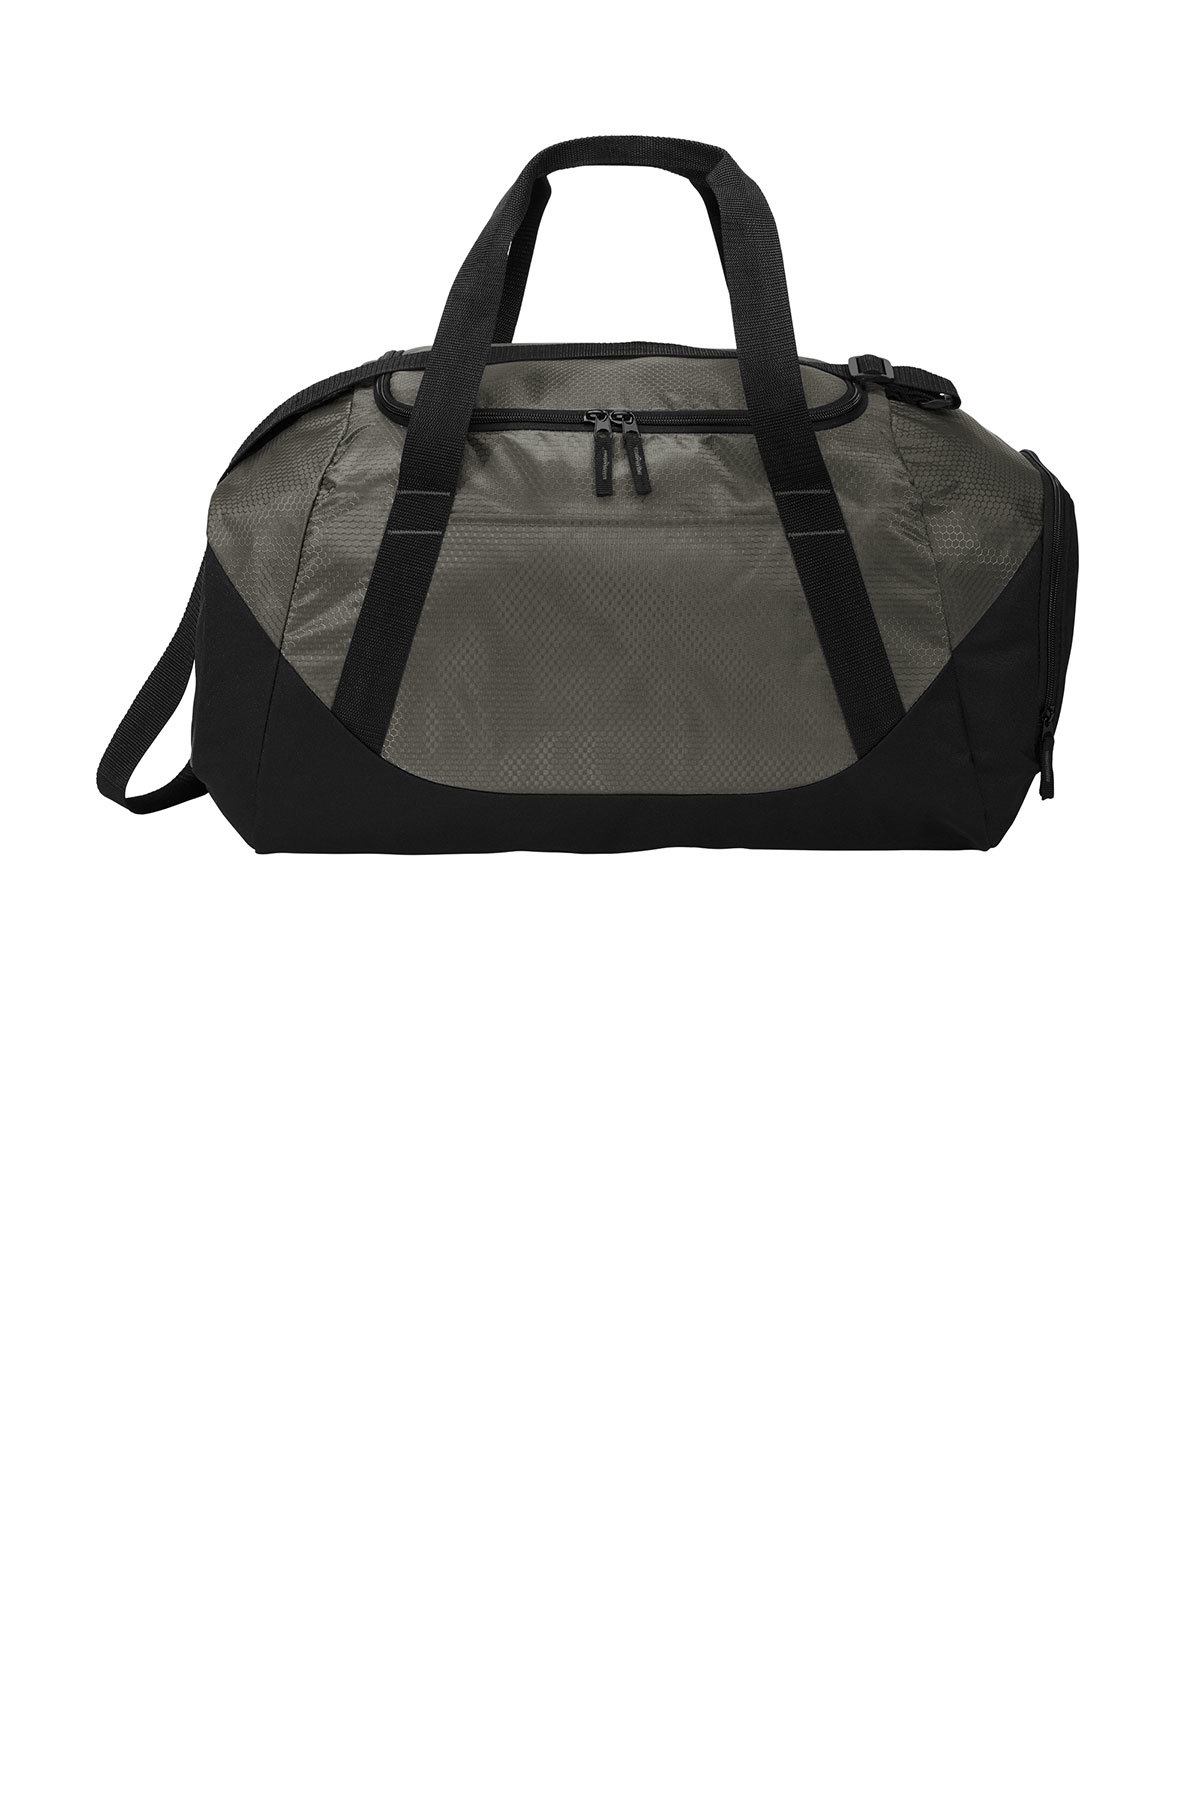 Port Authority BG804 - Team Duffel